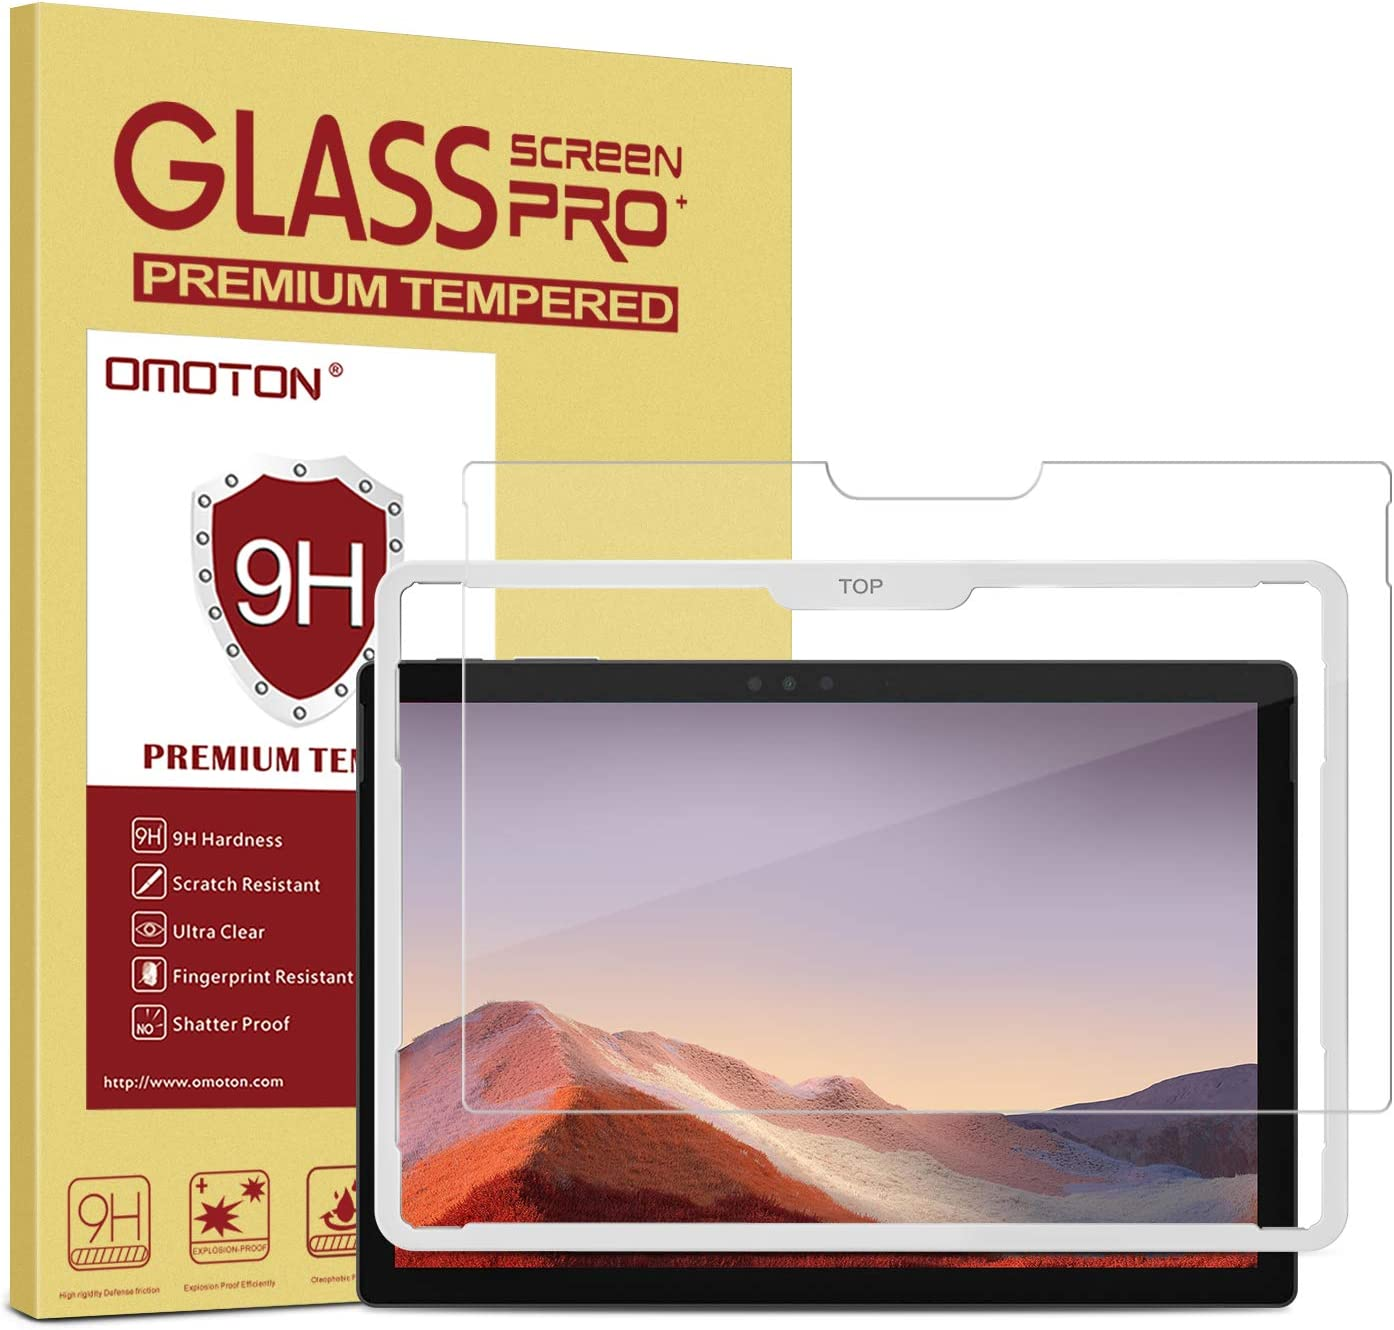 OMOTON Screen Protector Compatible with Surface Pro 7 / Surface Pro 6 / Surface Pro (5th Gen) / Surface Pro 4 [12.3 Inch] - [Tempered Glass] [High Responsivity] [Scratch Resistant] [High Definition]